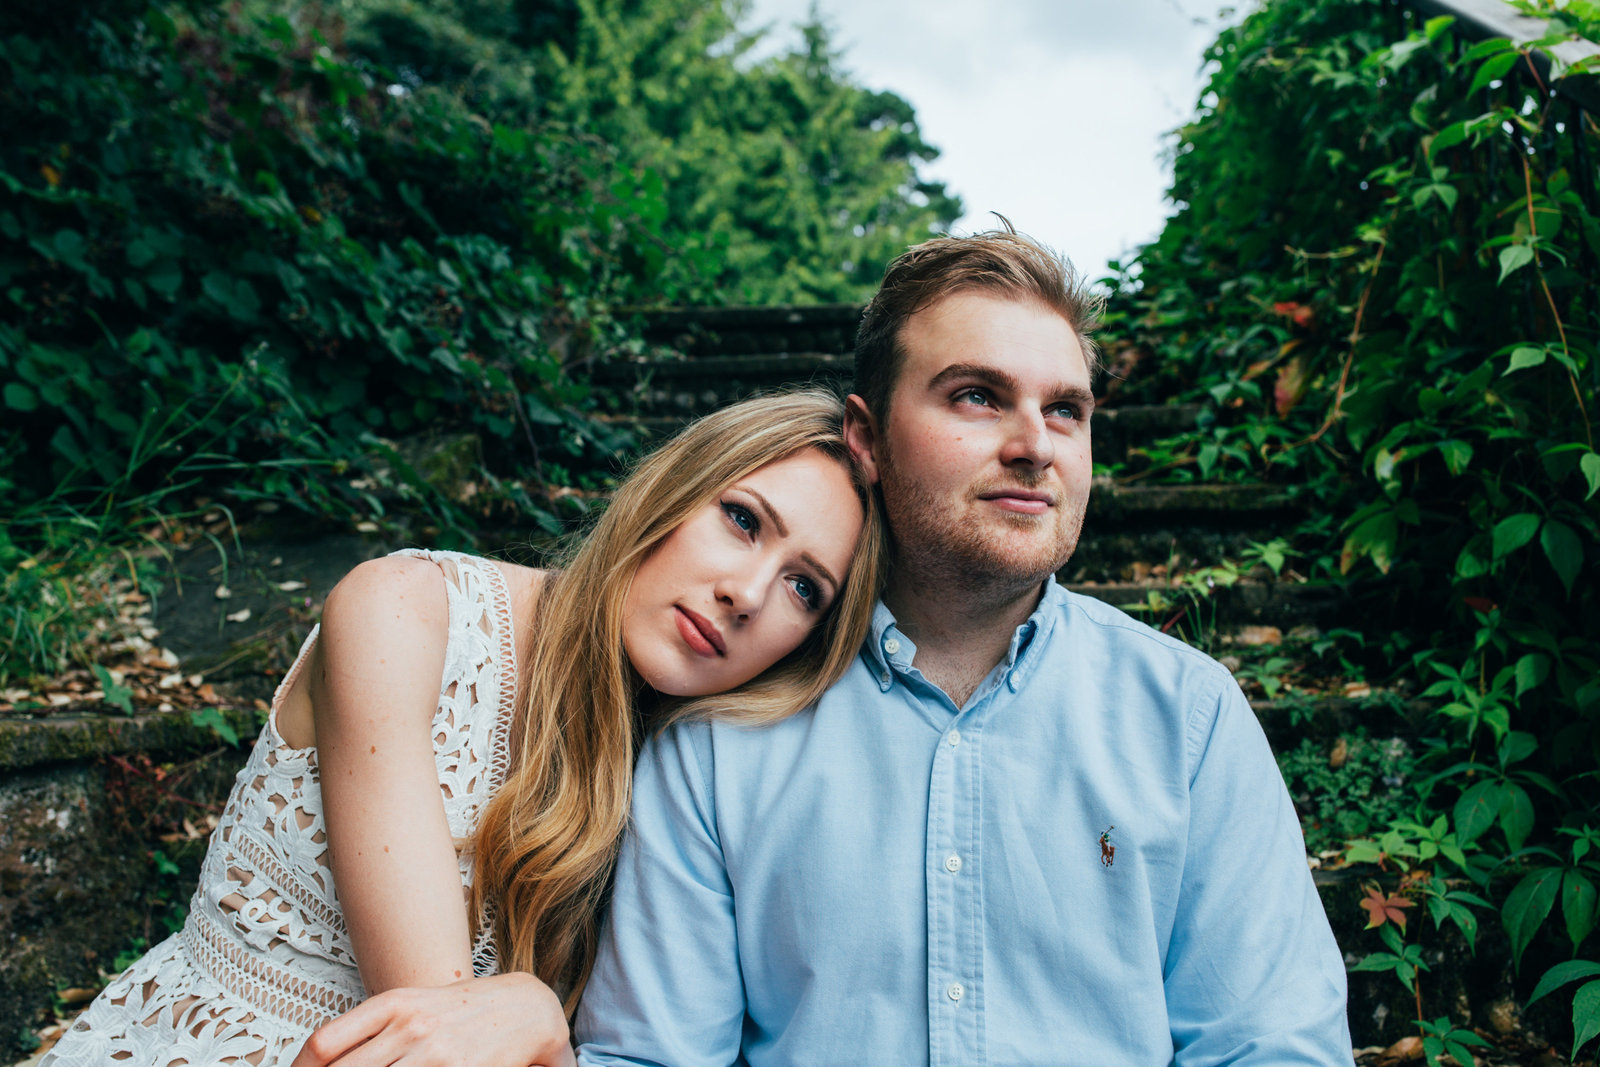 Photo of girlfriend leaning on boyfriend sitting on steps in leafy Suffolk